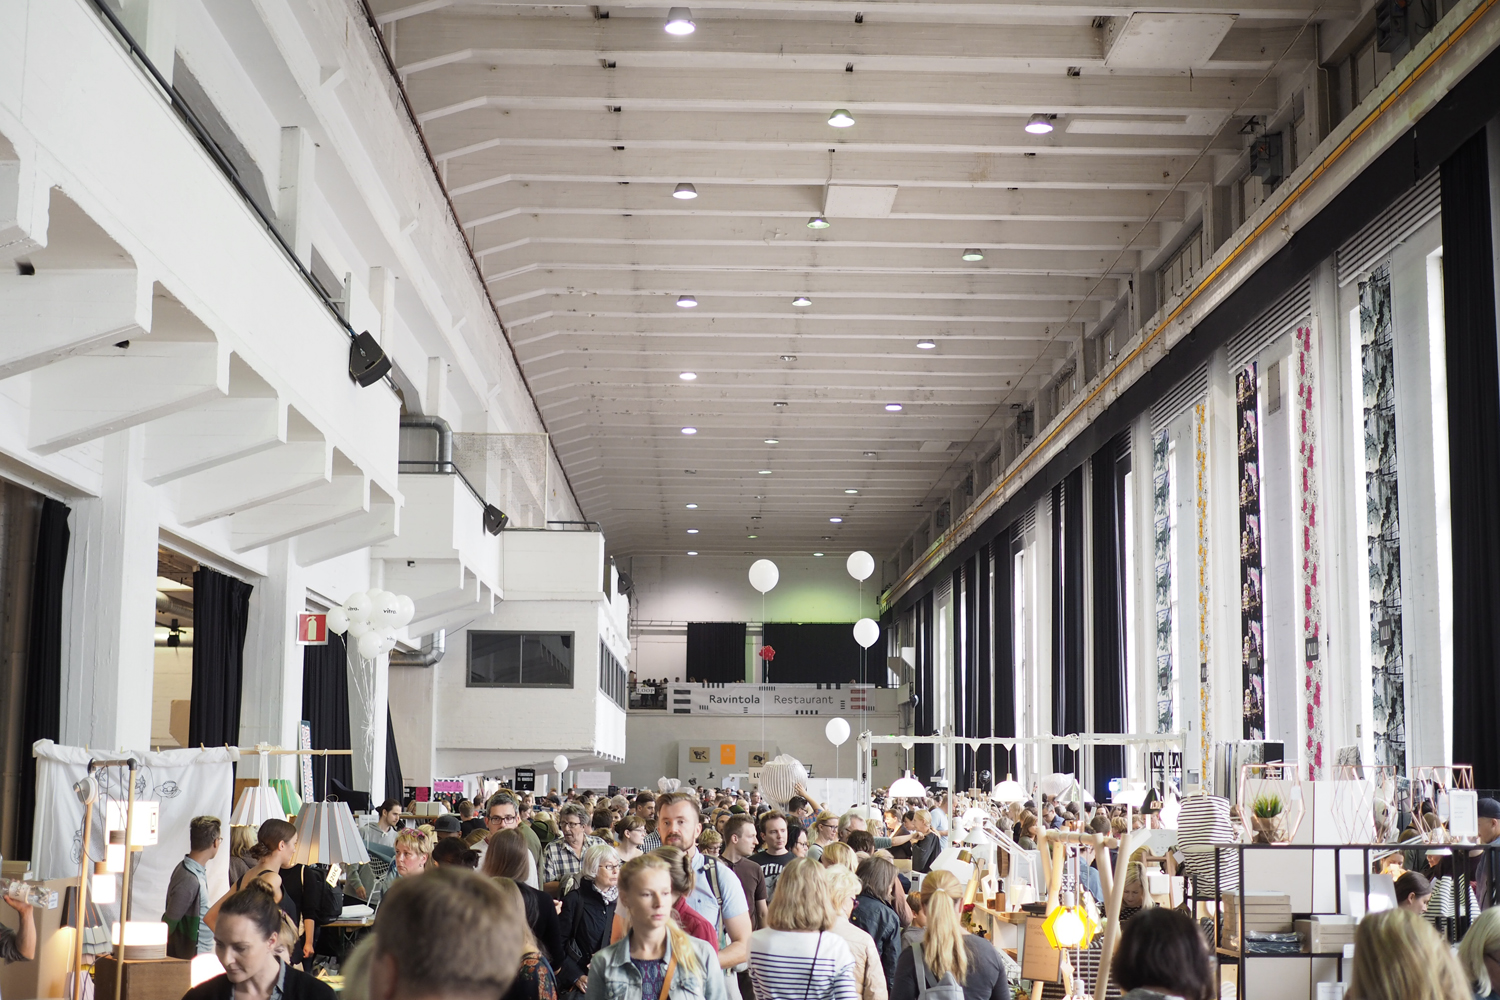 Helsinki Design Week 2019 Event Guide helsinki design week 2019 event guide HELSINKI DESIGN WEEK 2019 EVENT GUIDE Charandthecity lexus HDW 6